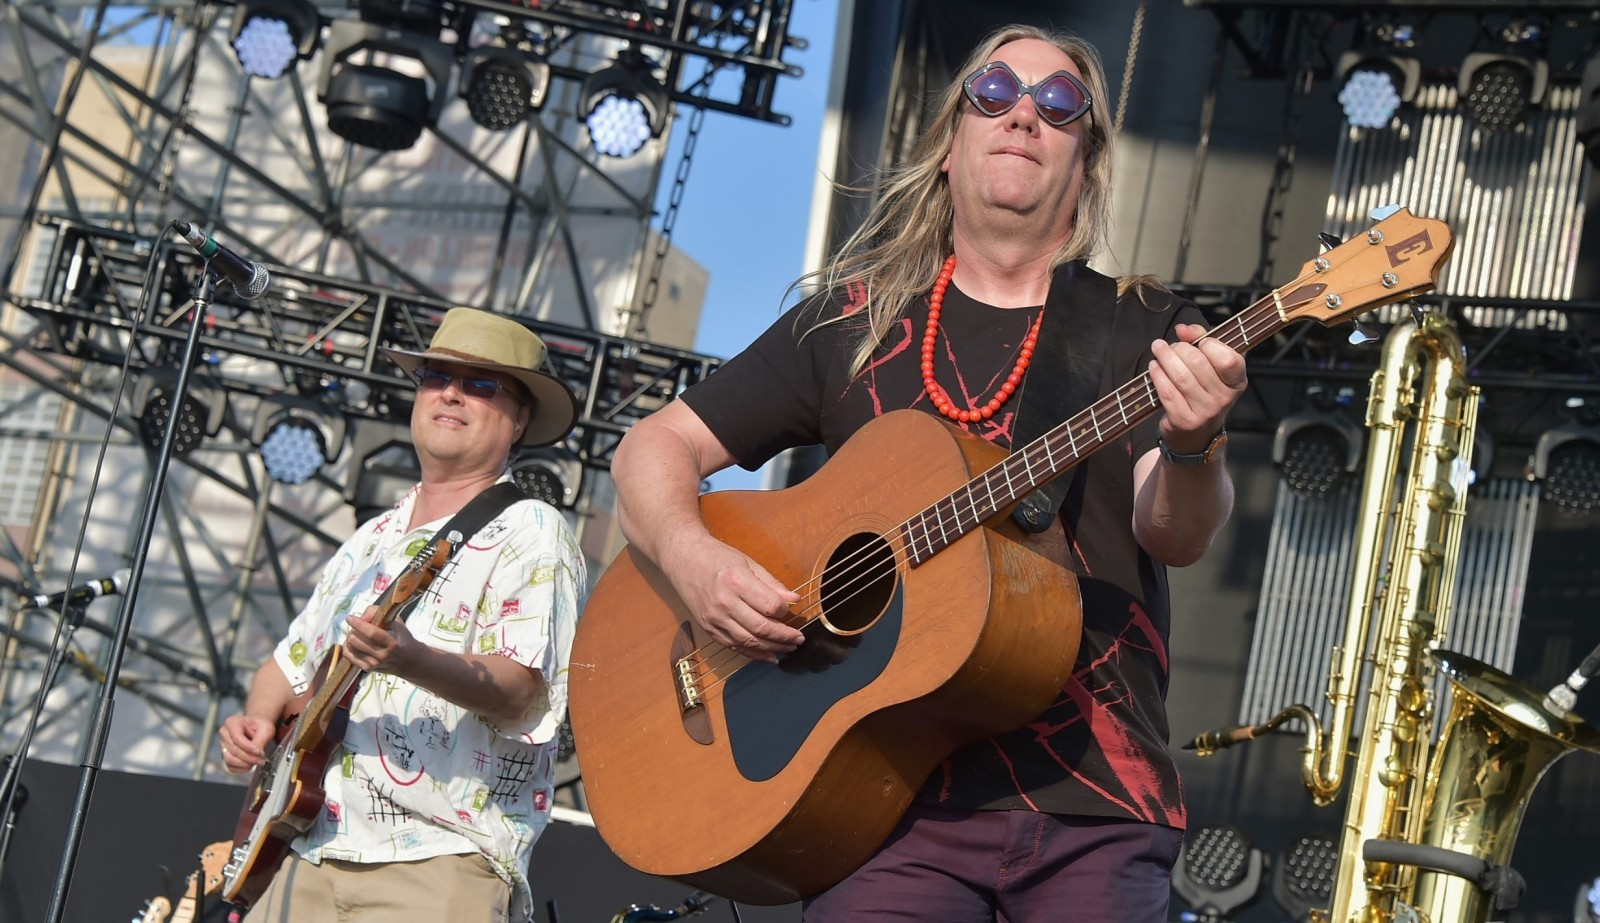 Violent Femmes will be a major part of Alternative Buffalo's Kerfuffle. (Theo Wargo/Getty Images)